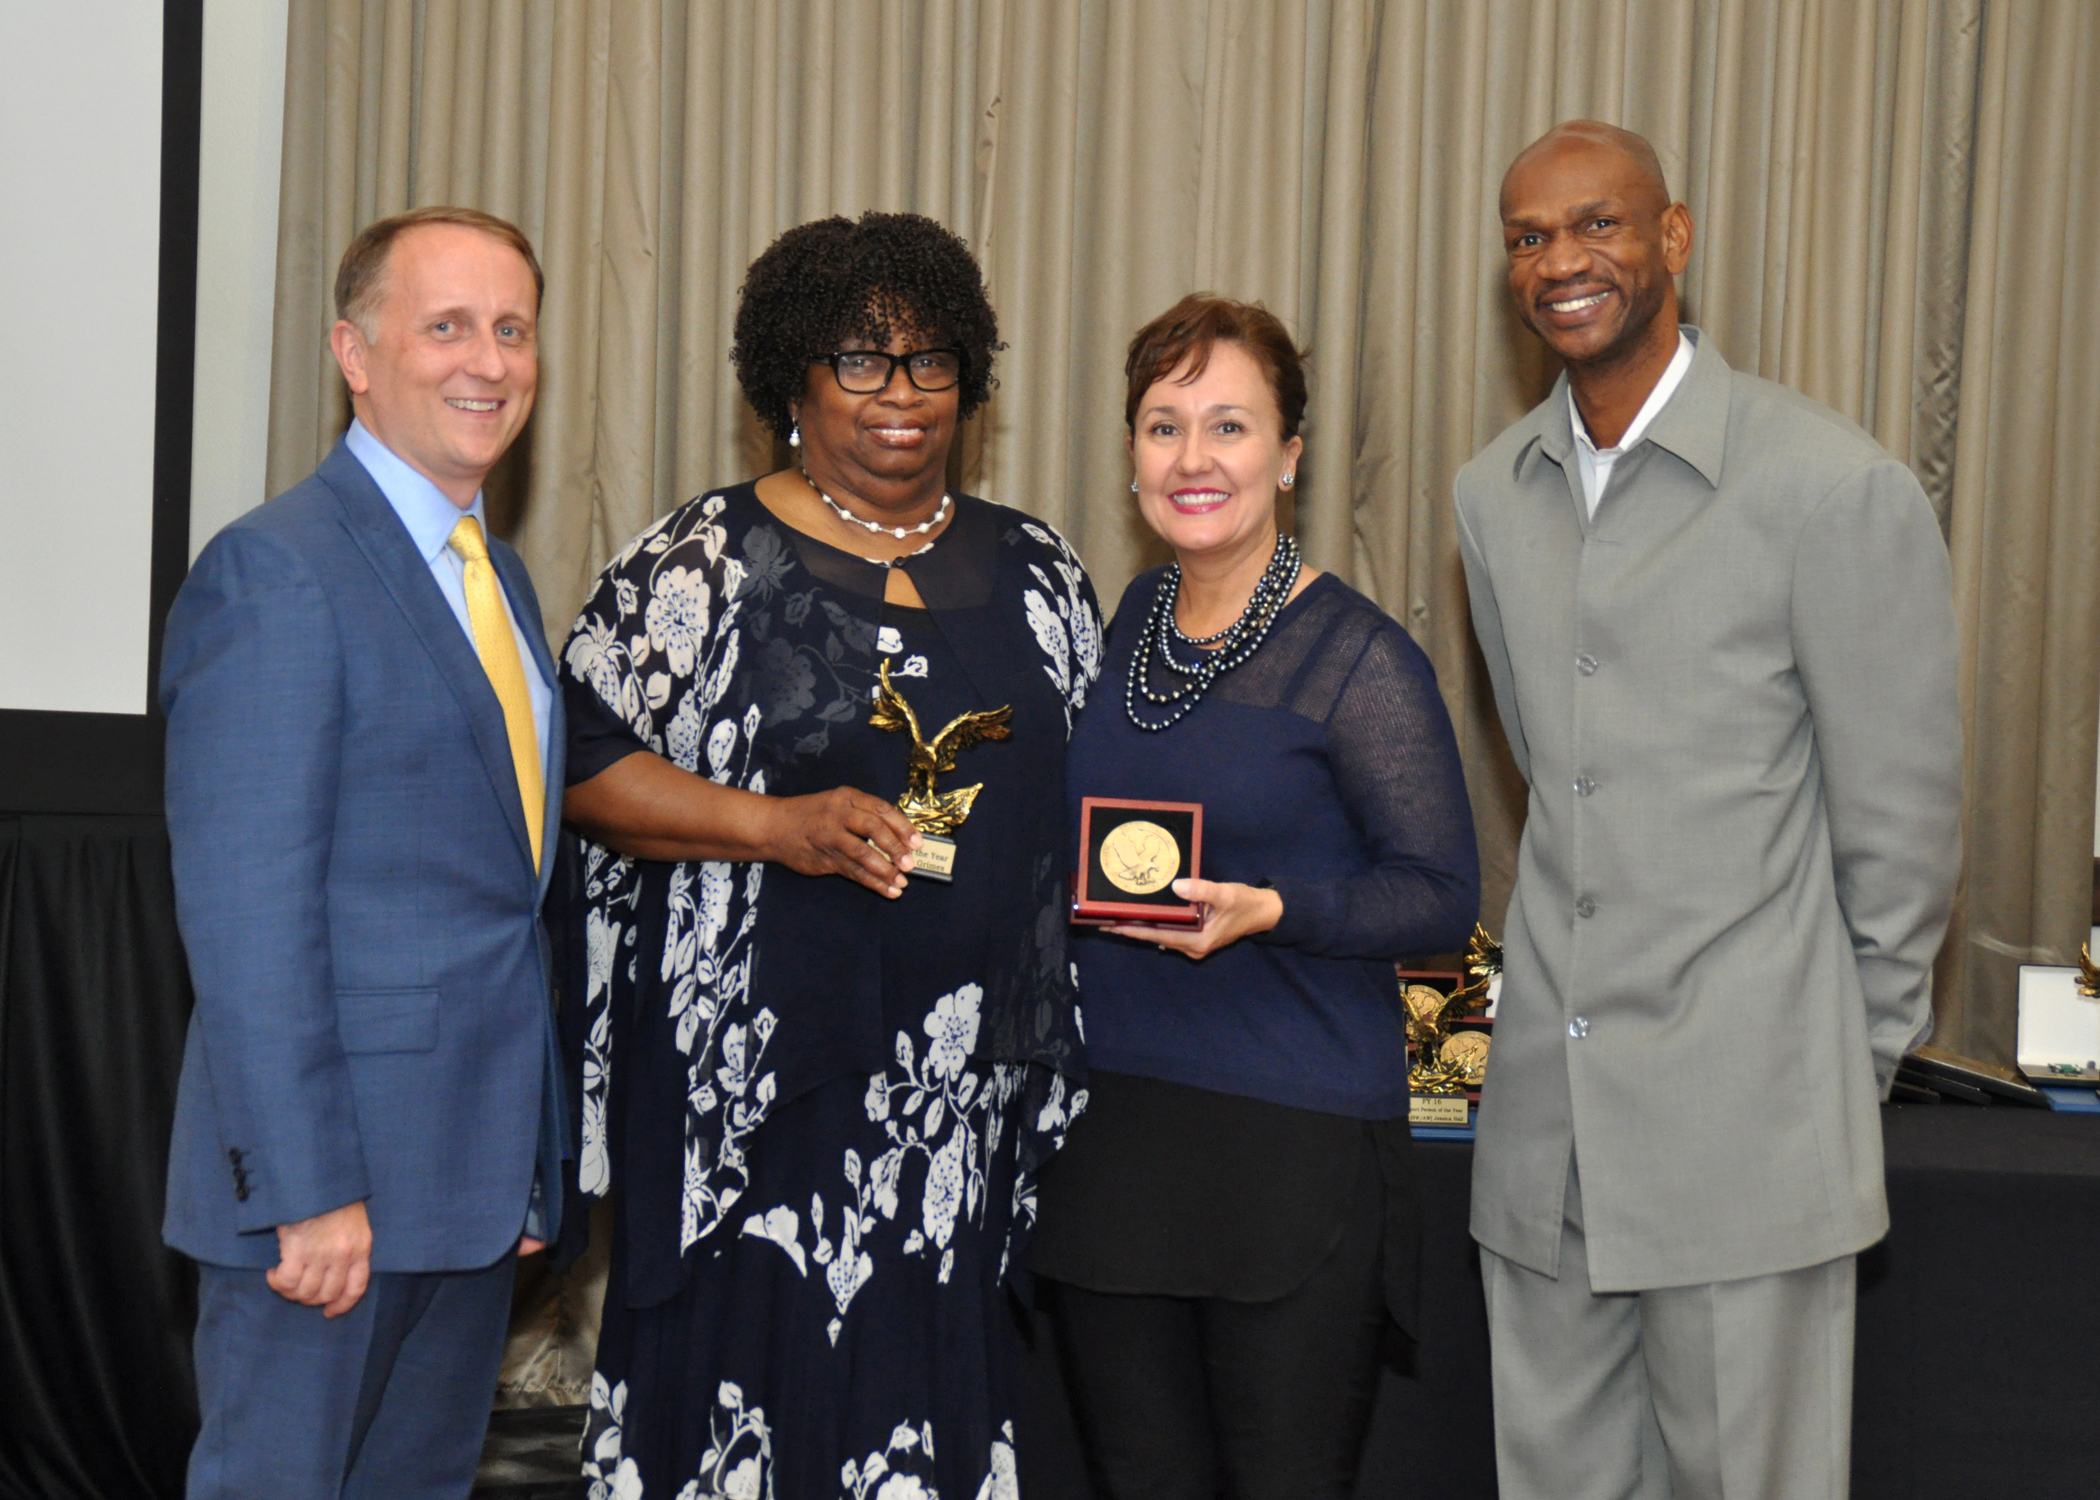 St. Thomas native Mariel Grimes (second from left), an enlisted processing assistant assigned to Navy Recruiting District (NRD) San Antonio, was recognized as the NRD's Civilian of the Year for Fiscal Year 2016 during an awards banquet held in Texas  (U.S. Navy photo by Burrell Parmer, Navy Recruiting District San Antonio Public Affairs/Released)